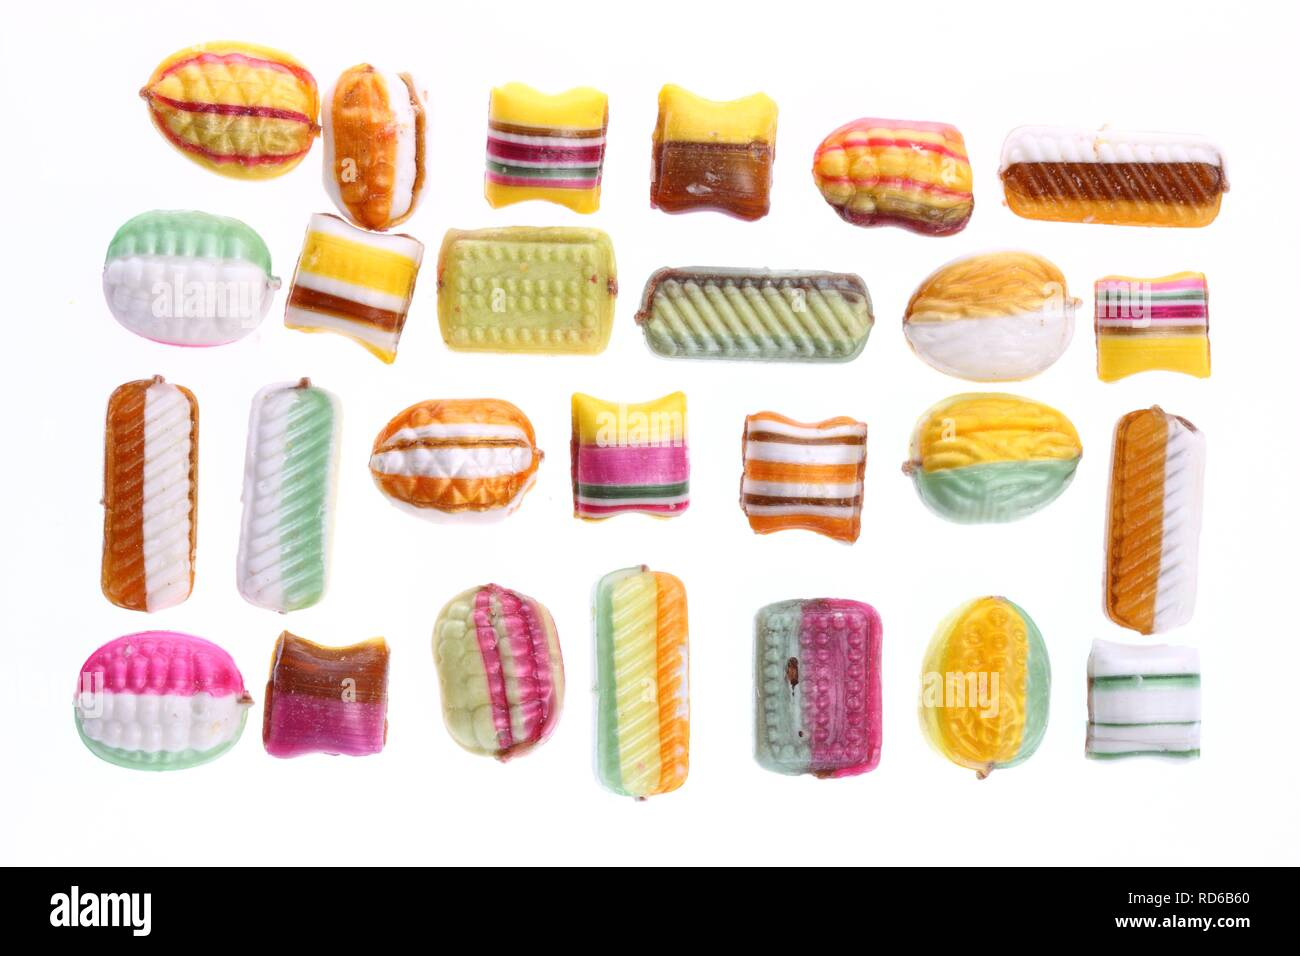 Boiled sweets or drops with different shapes and motifs - Stock Image